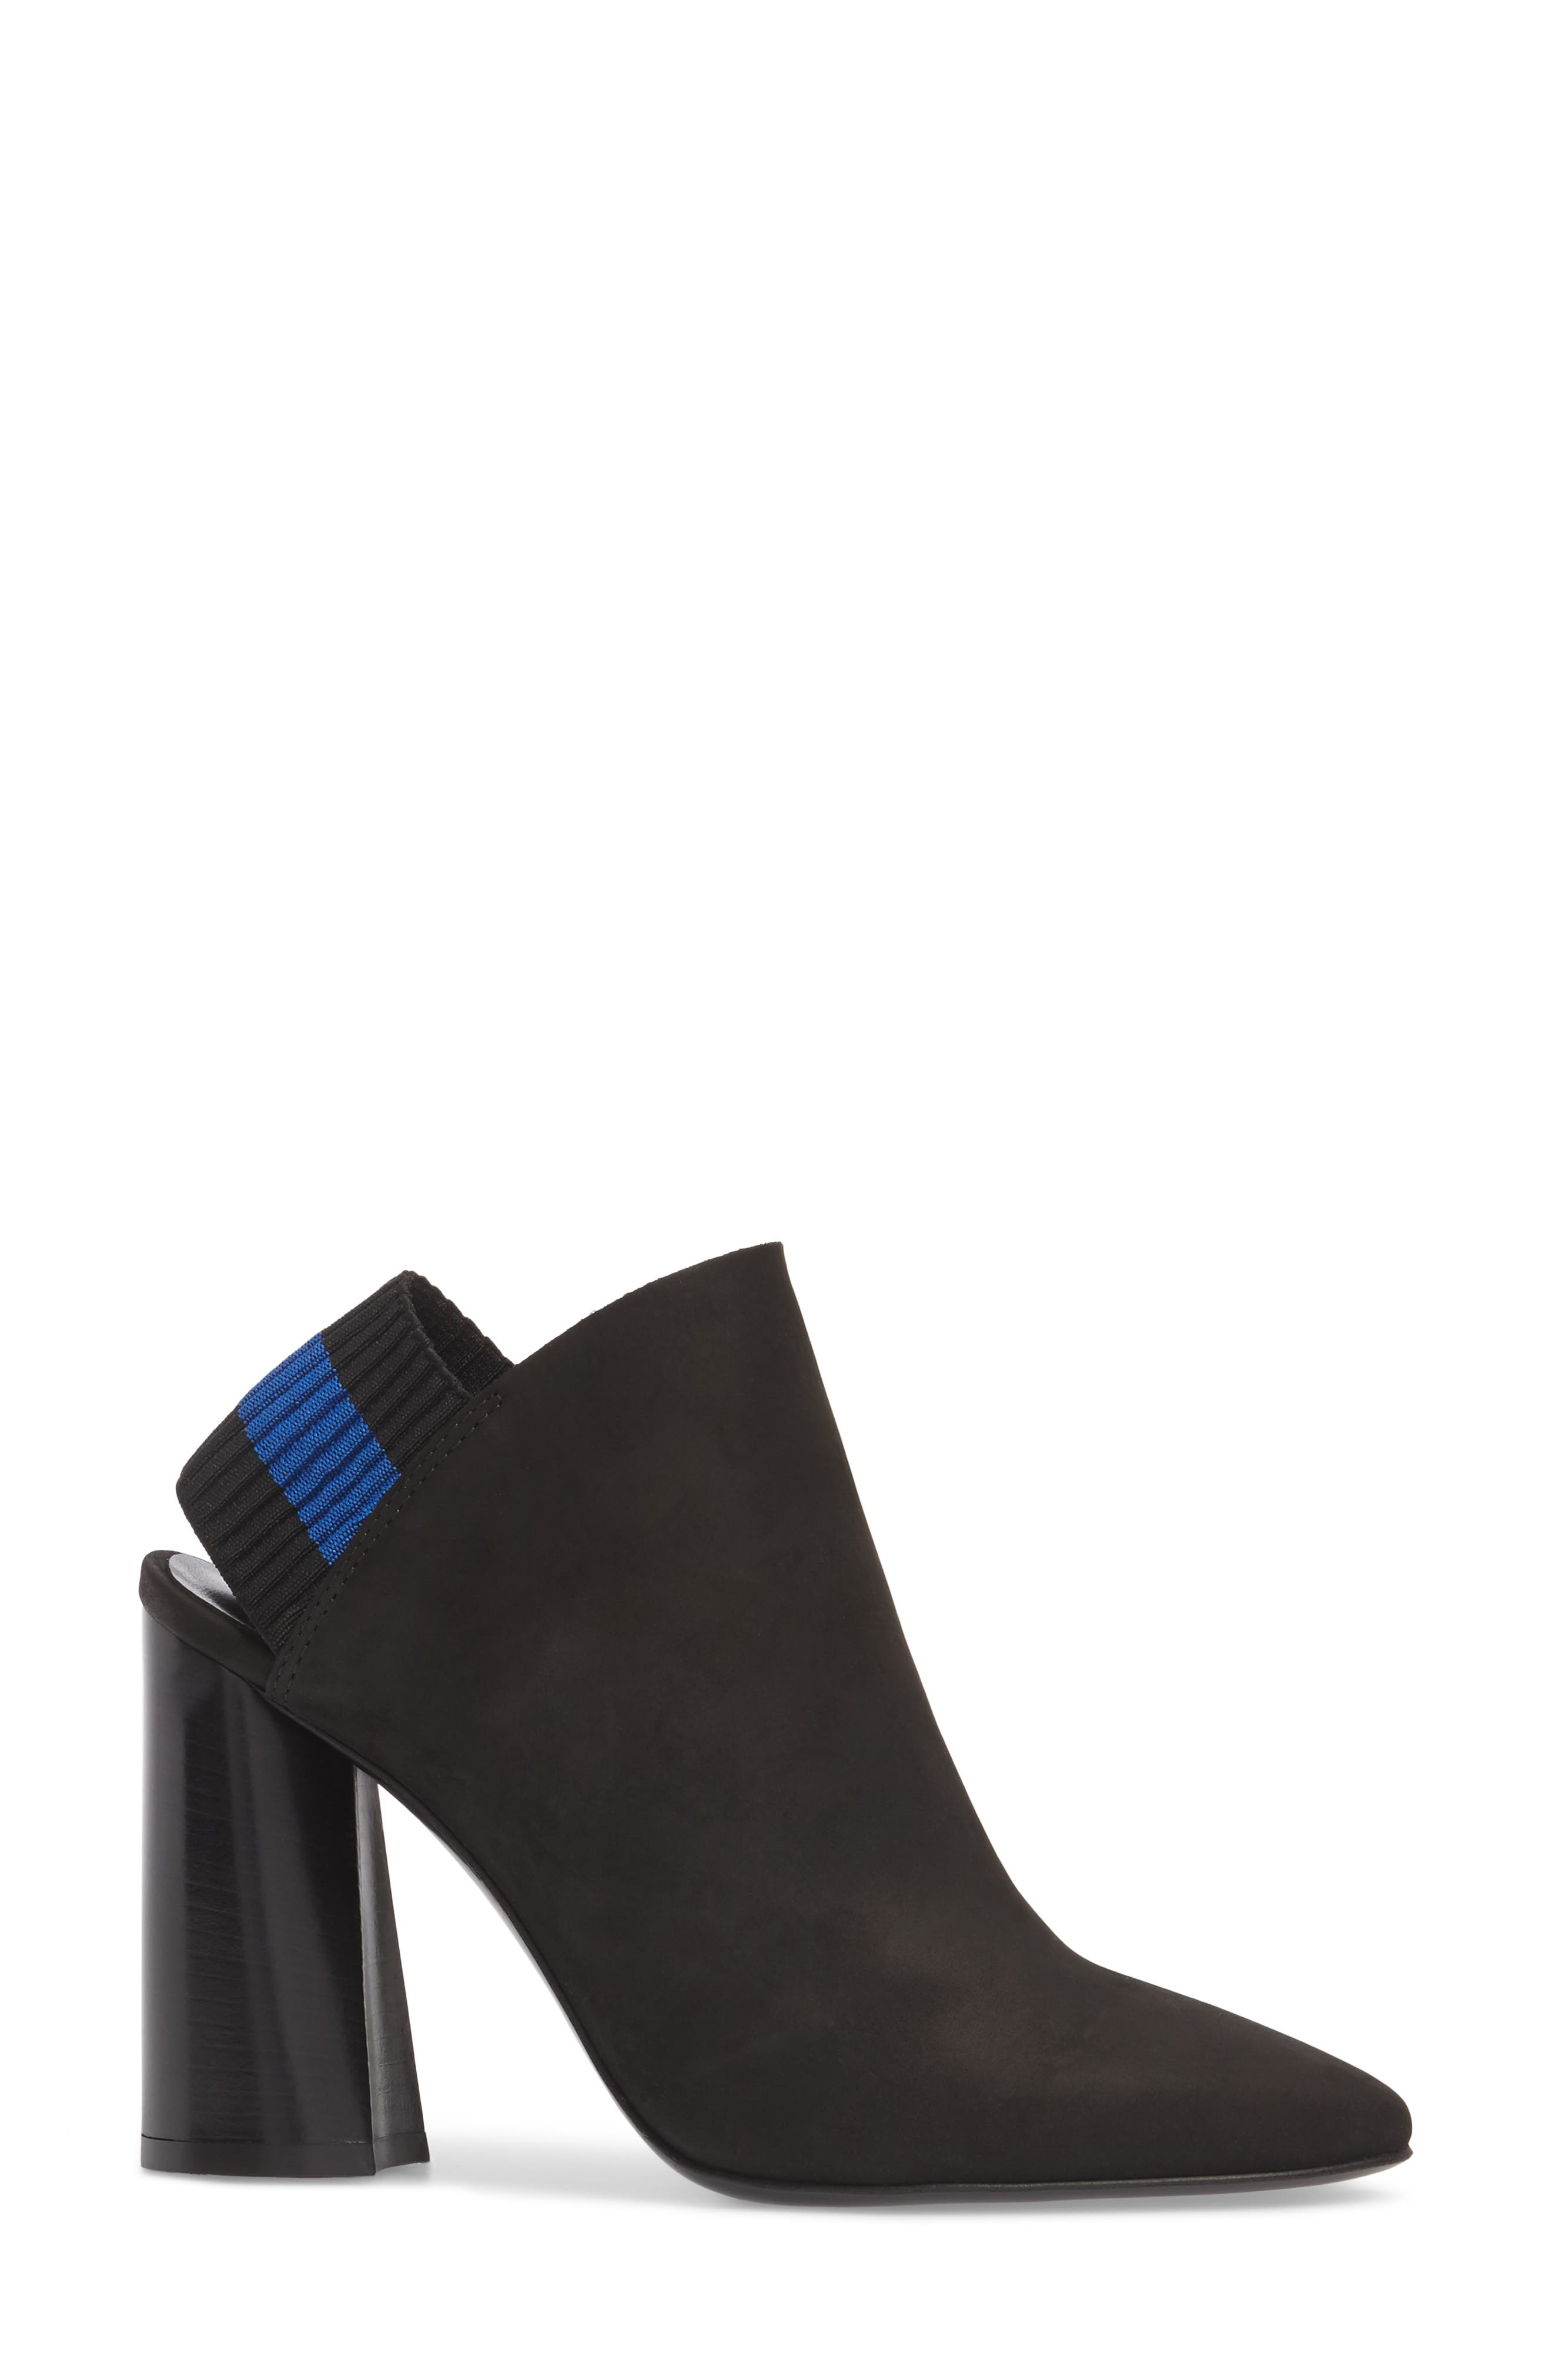 Alternate Image 3  - 3.1 Phillip Lim Drum Slingback Bootie (Women)